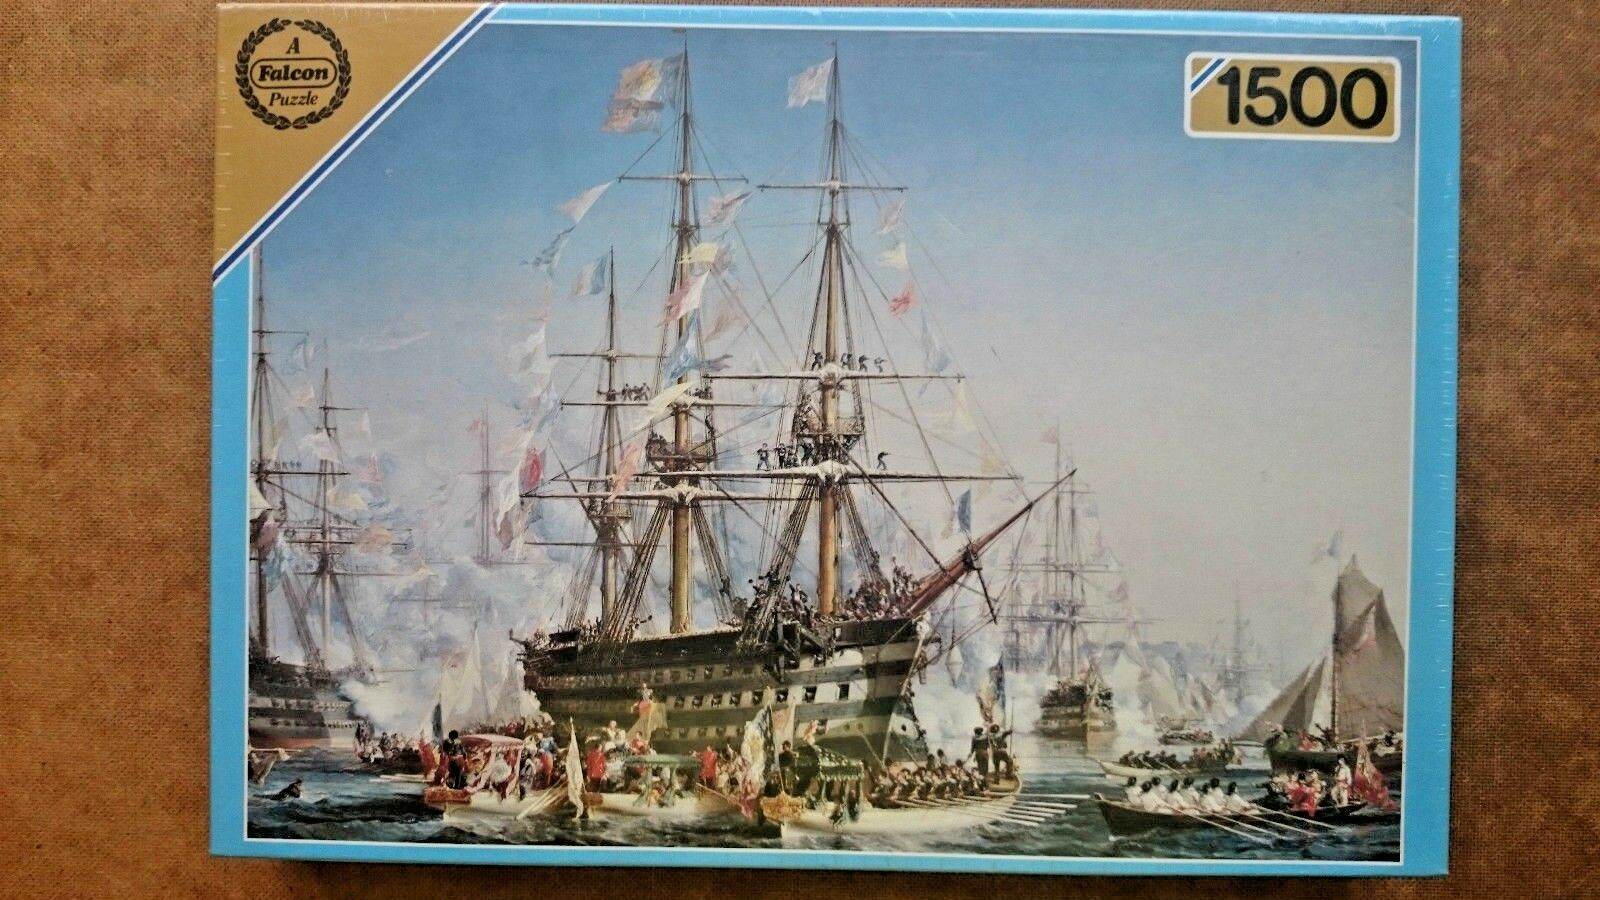 Napoleon 3  Receiving Queen Victoria  1500 Piece Jigsaw Puzzle New and Sealed